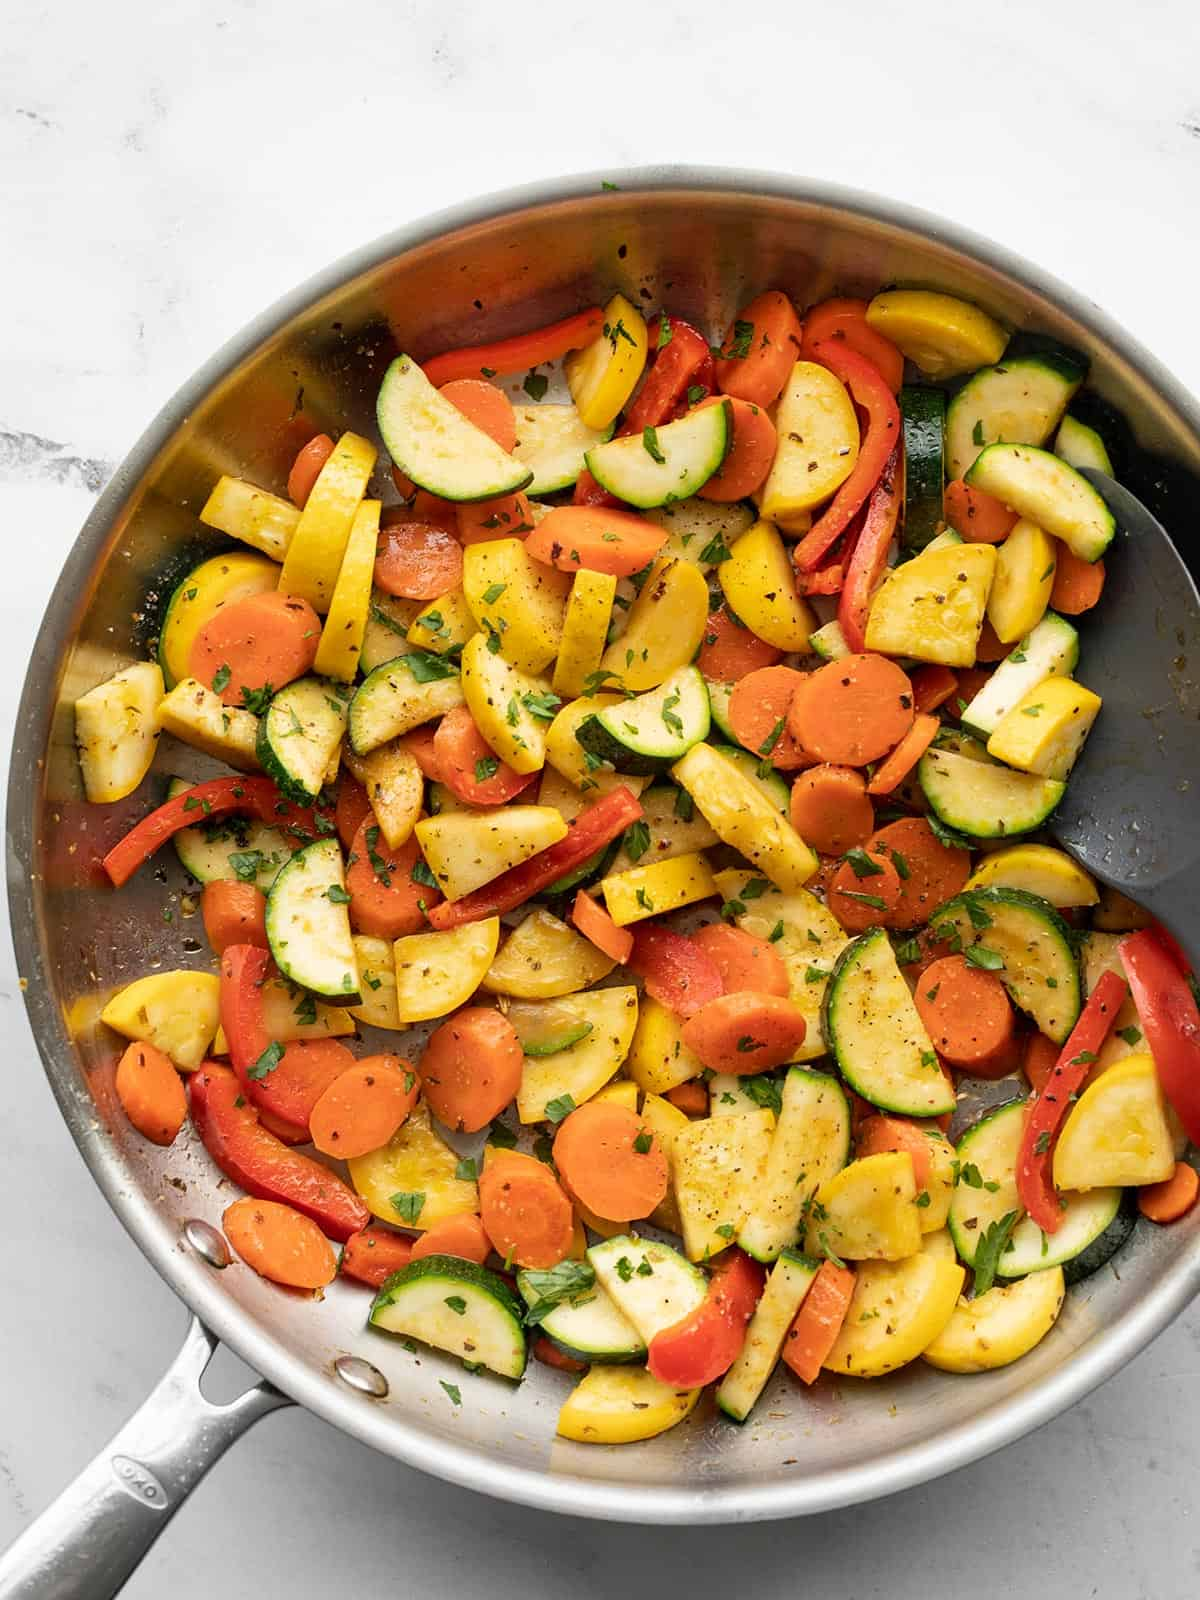 Sautéed vegetables in a skillet with a spatula